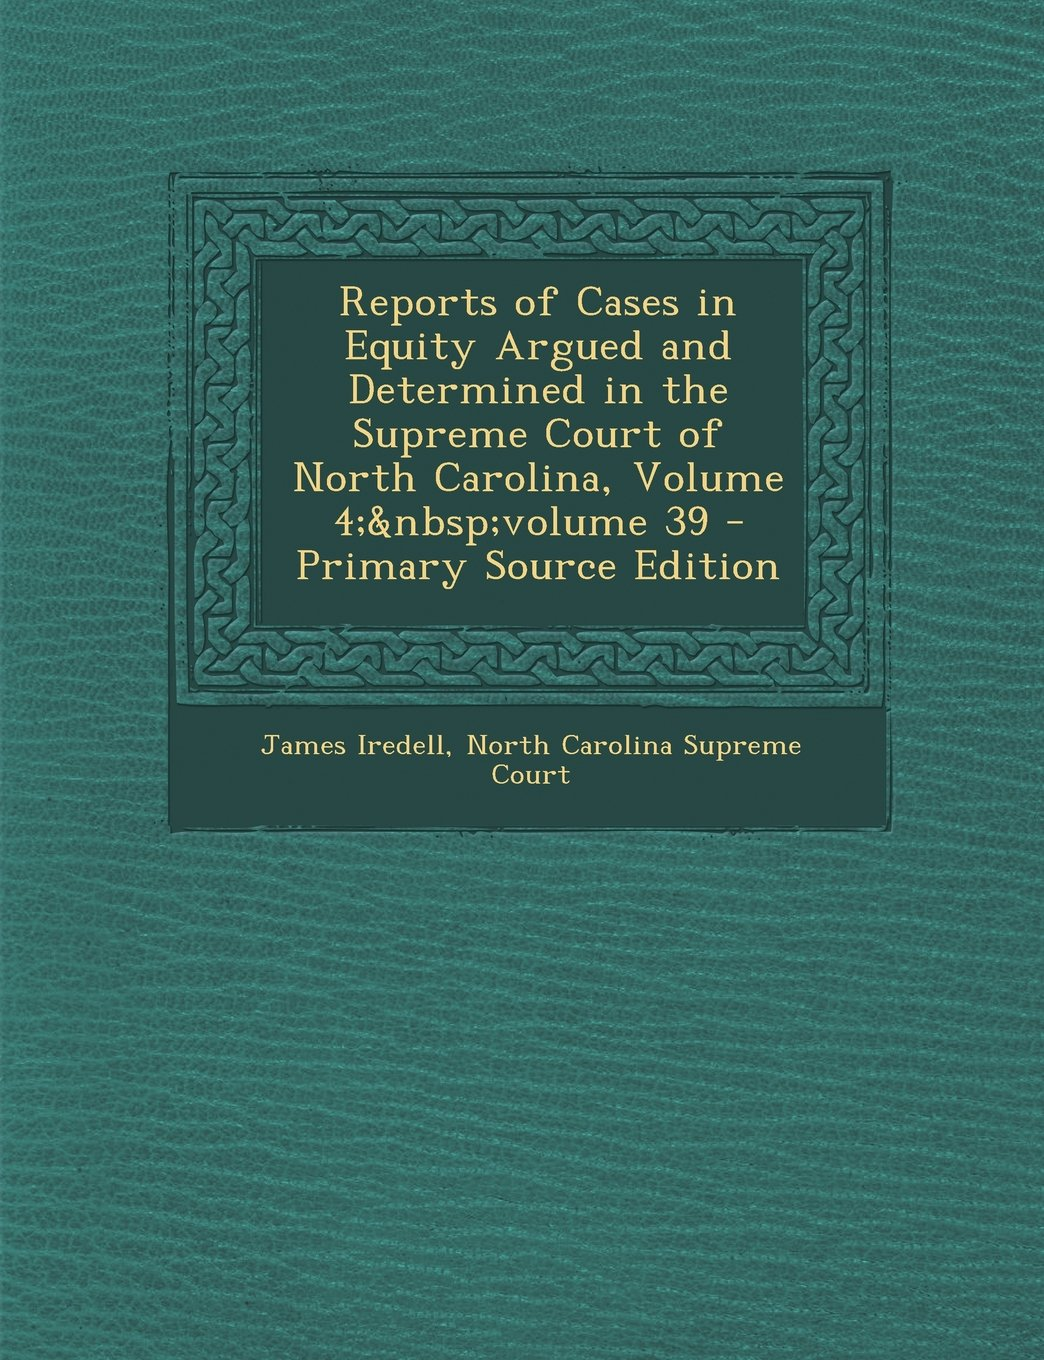 Download Reports of Cases in Equity Argued and Determined in the Supreme Court of North Carolina, Volume 4; volume 39 ebook